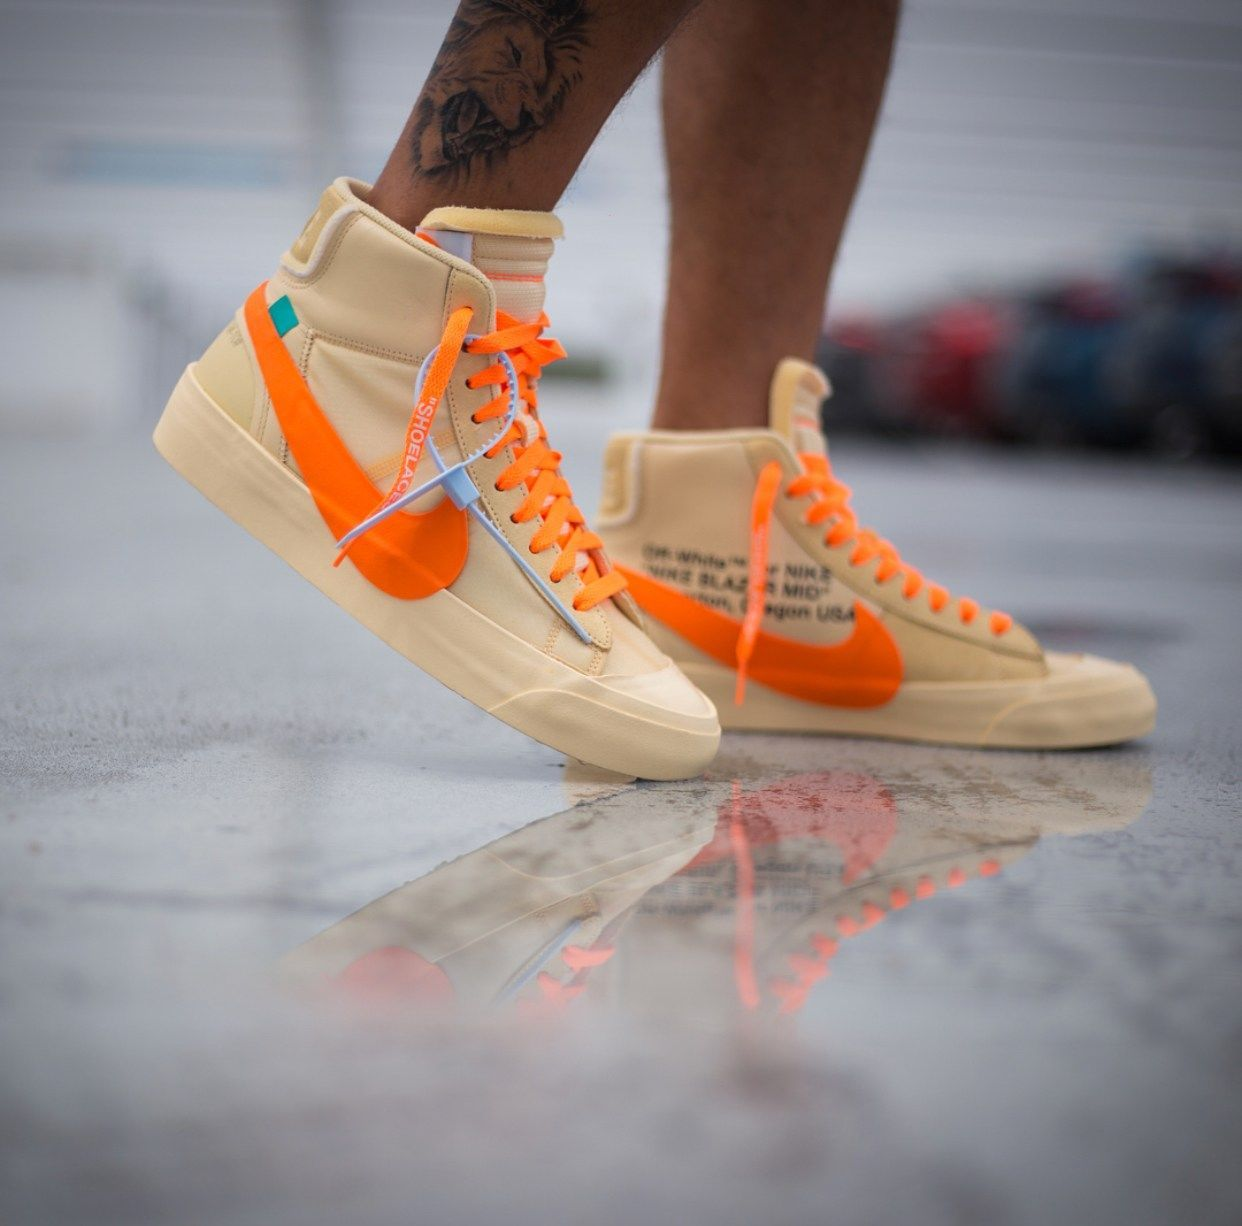 Off White Nike Blazer Studio Mid All Hallow S Eve With Images